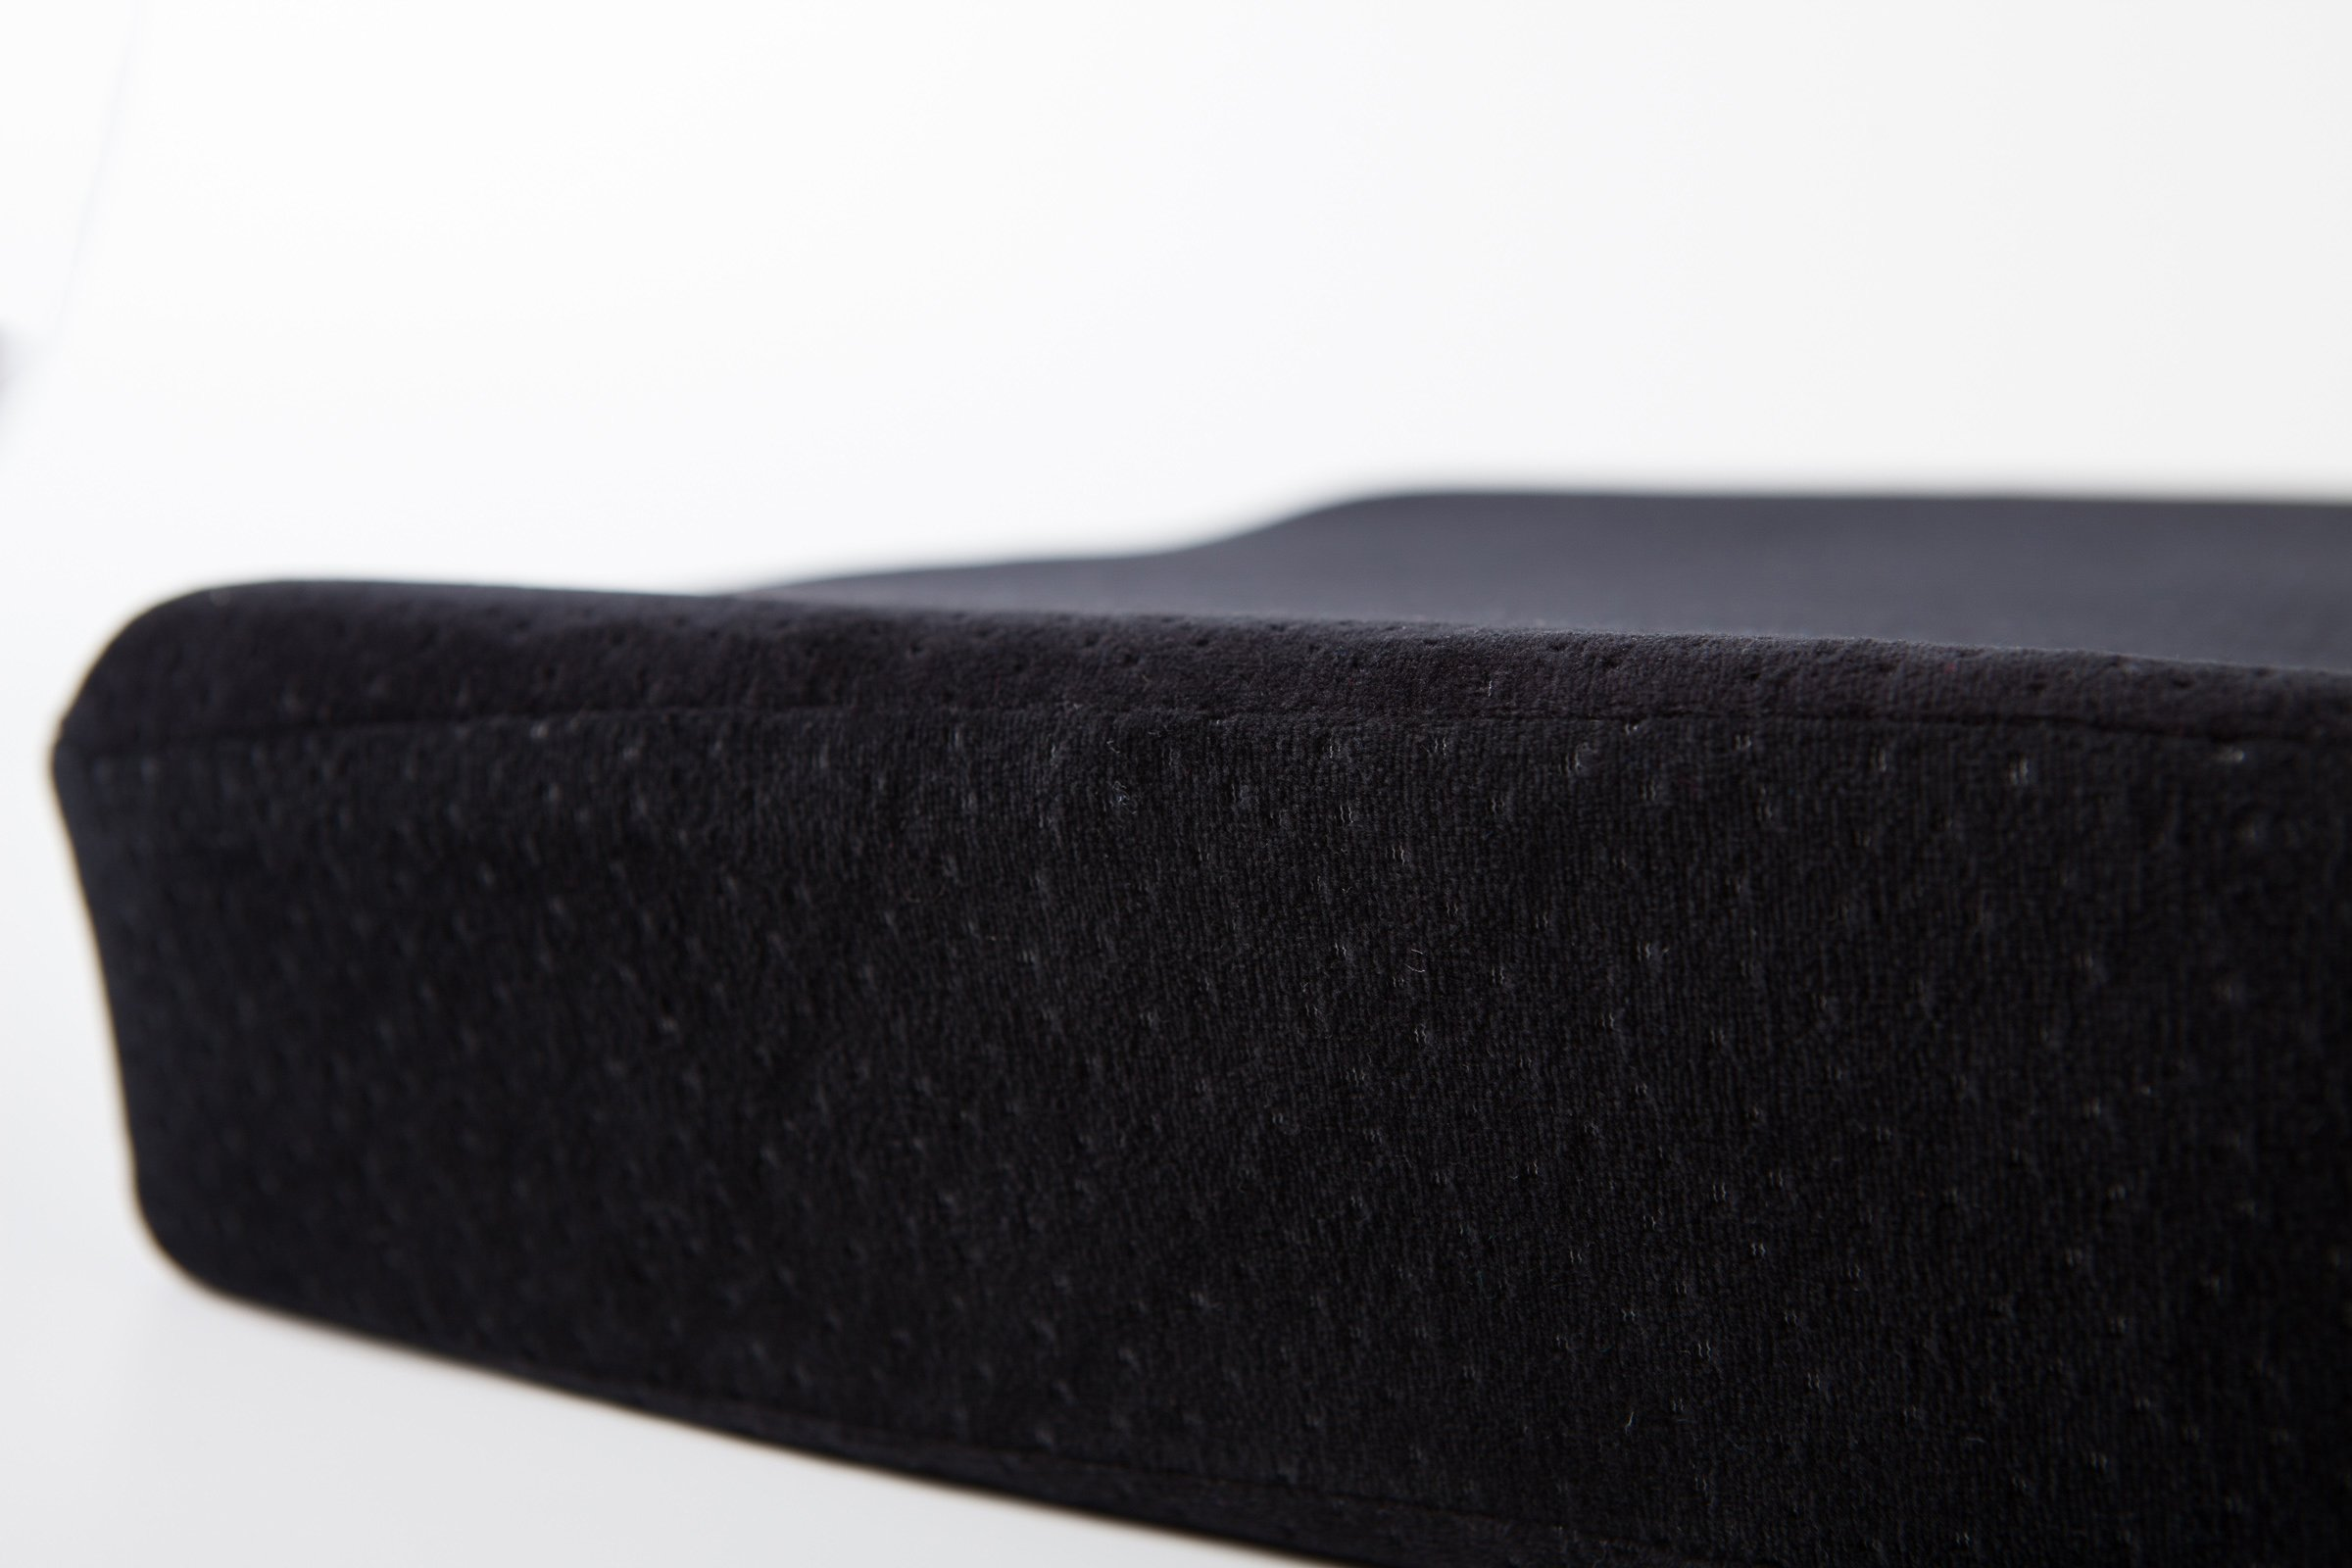 AERIS Memory Foam Seat Cushion Premium Large Office Chair Pad with a Buckle to Prevent Sliding-Car Machine Washable Black Plush Velour Cover by AERIS (Image #9)